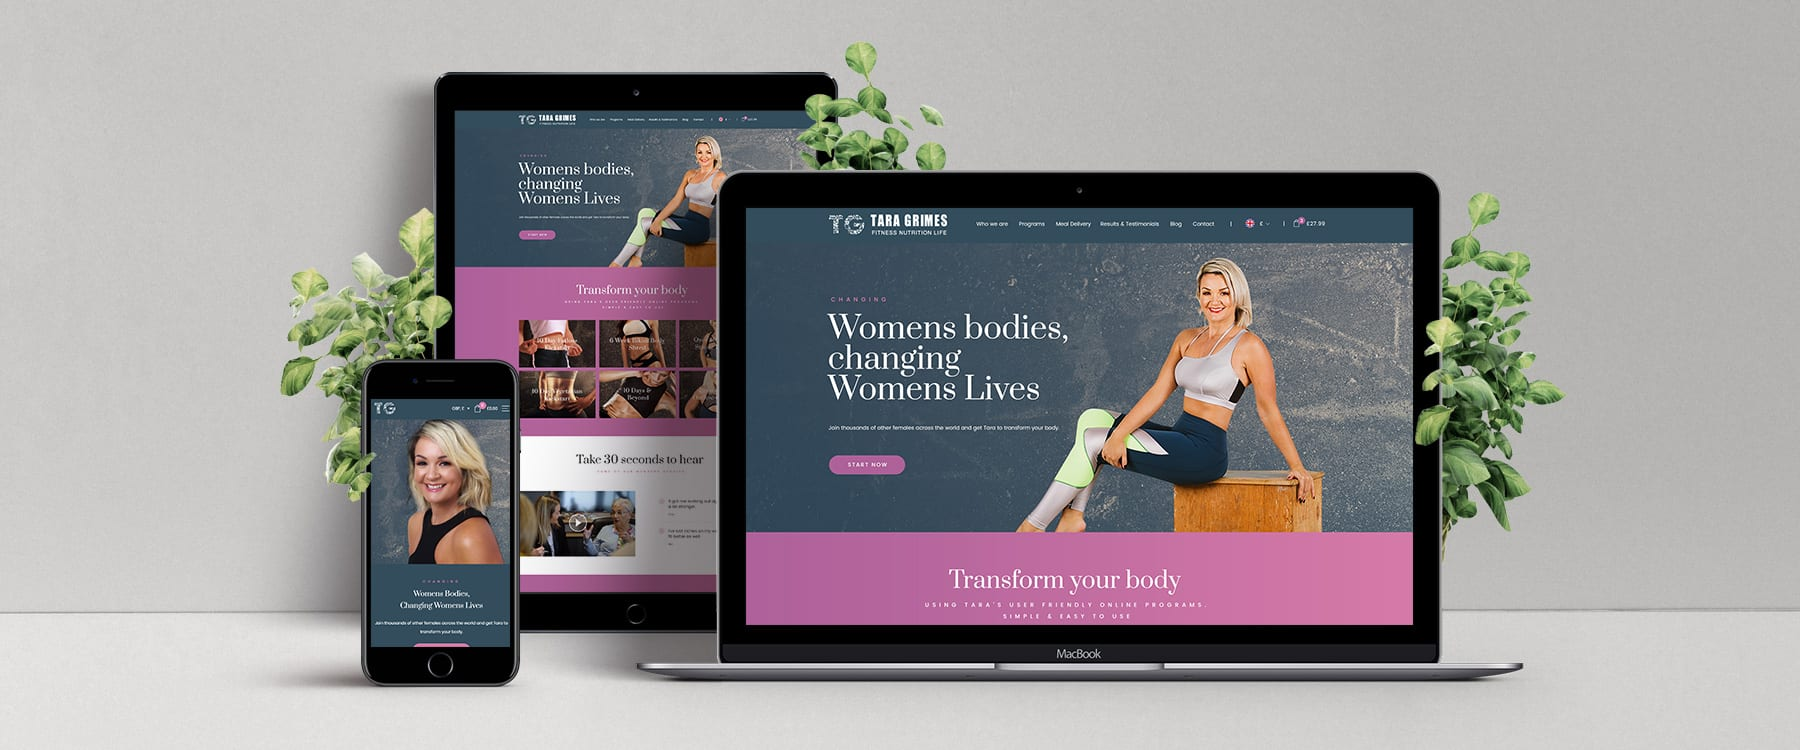 Website Redesign for Passionate Fitness & Nutrition Expert, Tara Grimes Image